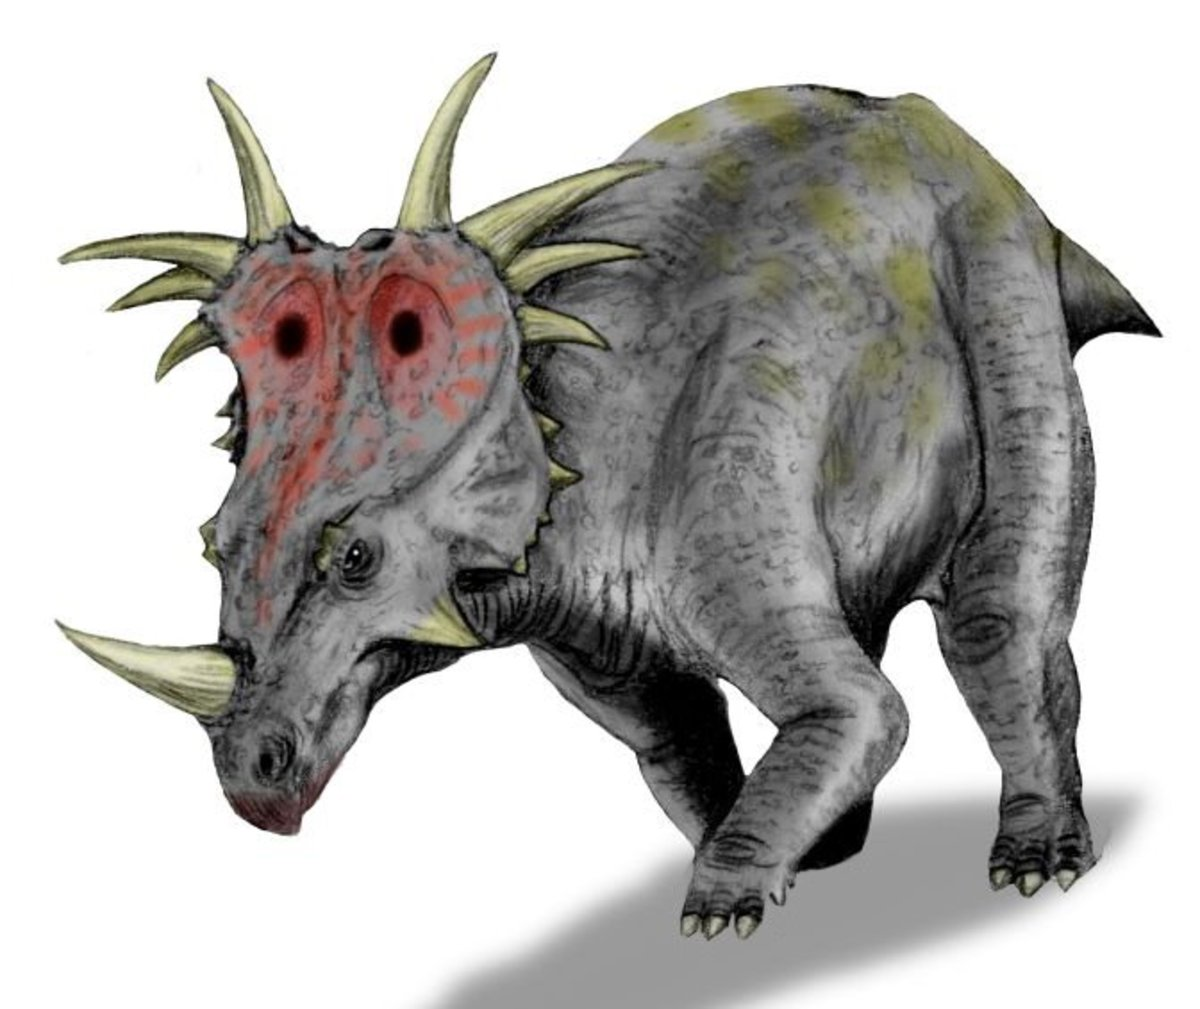 This Is Styracosaurus A Ceratopsian Dinosaur That Matches The Description Of Ngoubou